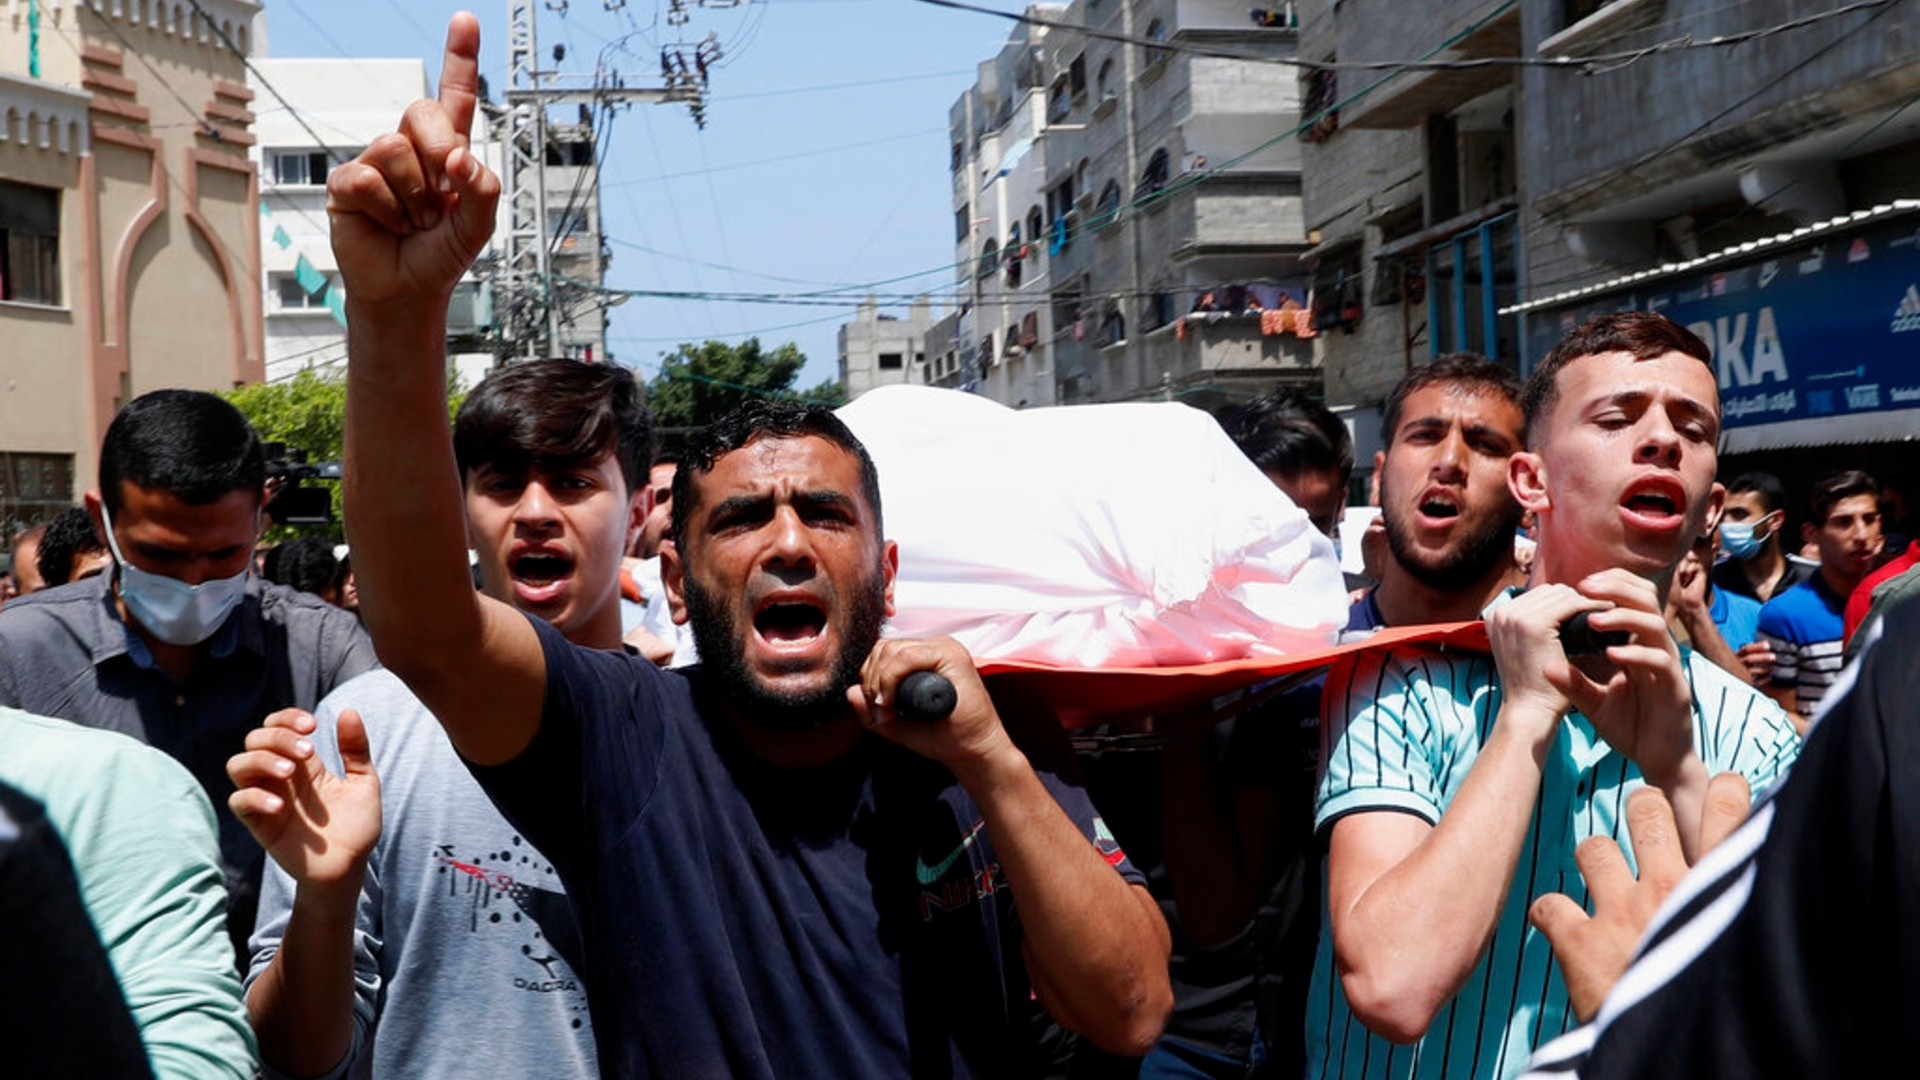 Mourners chant Islamic slogans while they carry the body of Amira Soboh, and her 19-year-old disabled son Abdelrahman, who were killed in Israeli airstrikes at their apartment building, during their funeral at the Shati refugee camp, in Gaza City, Tuesday, May 11, 2021. (AP Photo/Adel Hana)